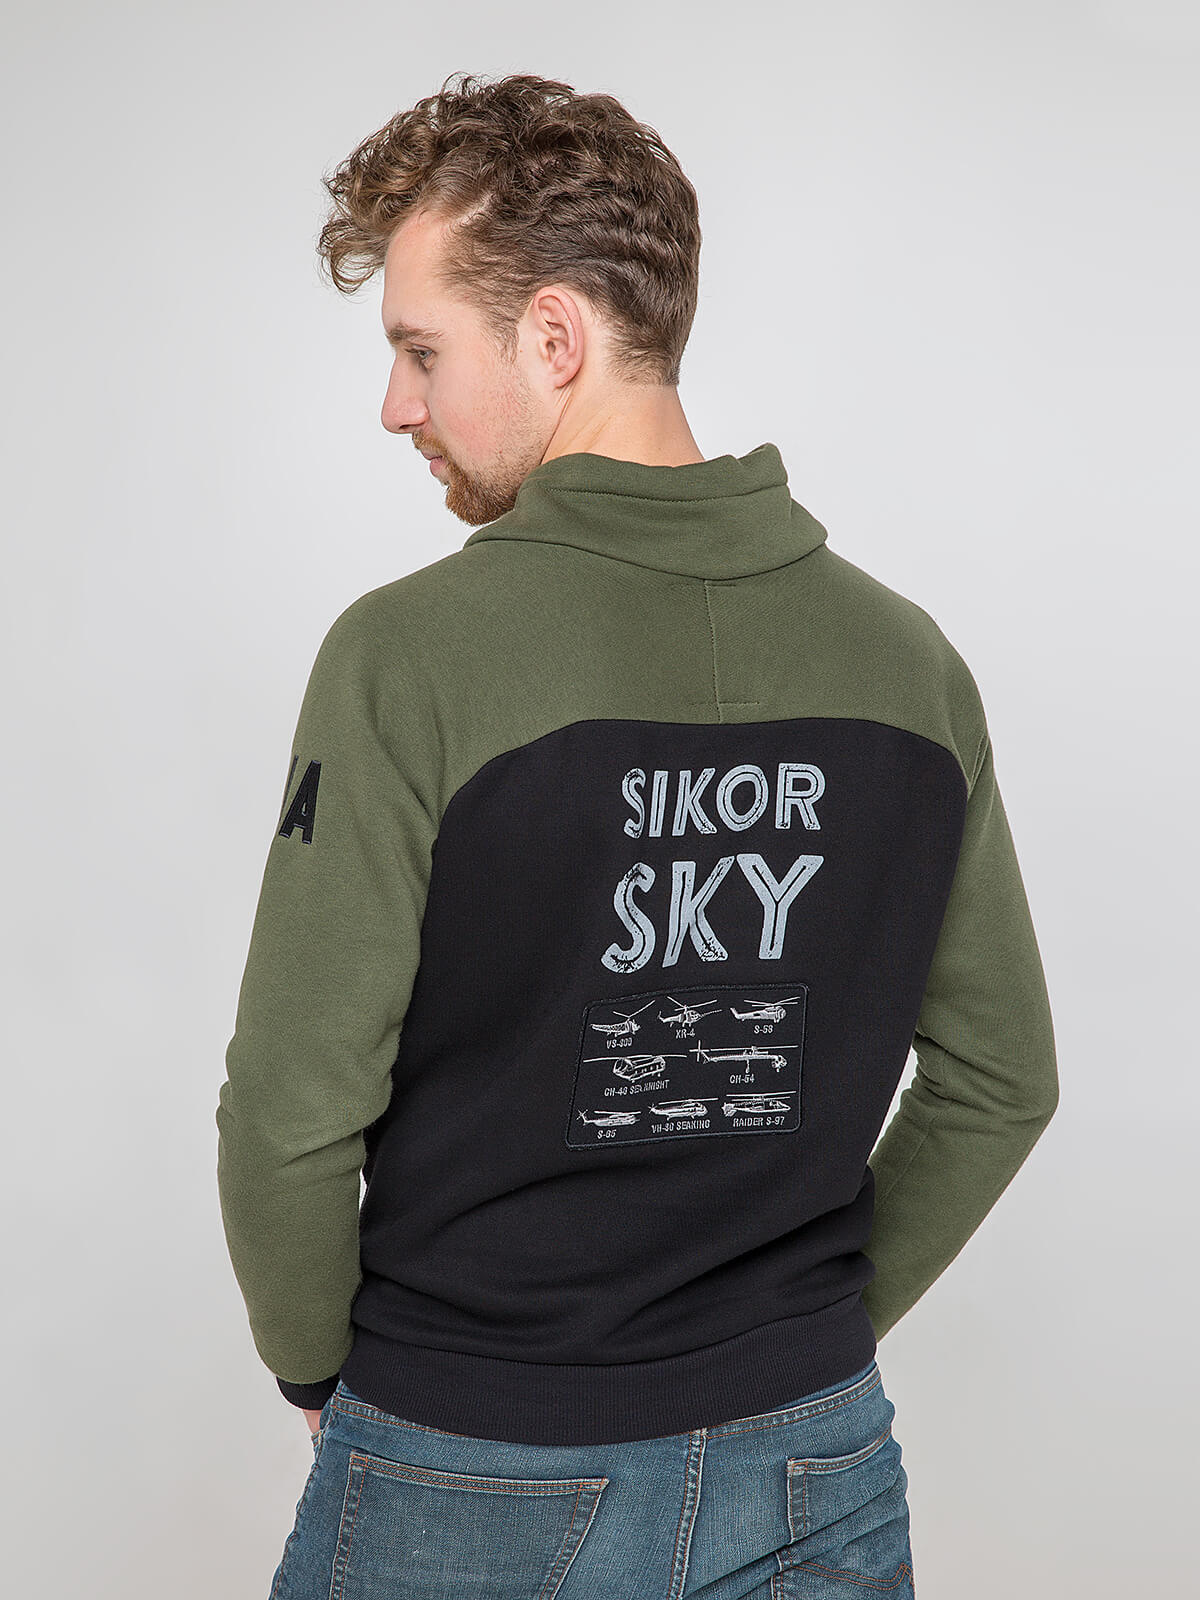 Men's Sweatshirt Sikorsky. Color khaki.  Technique of prints applied: silkscreen printing, embroidery, chevrons.